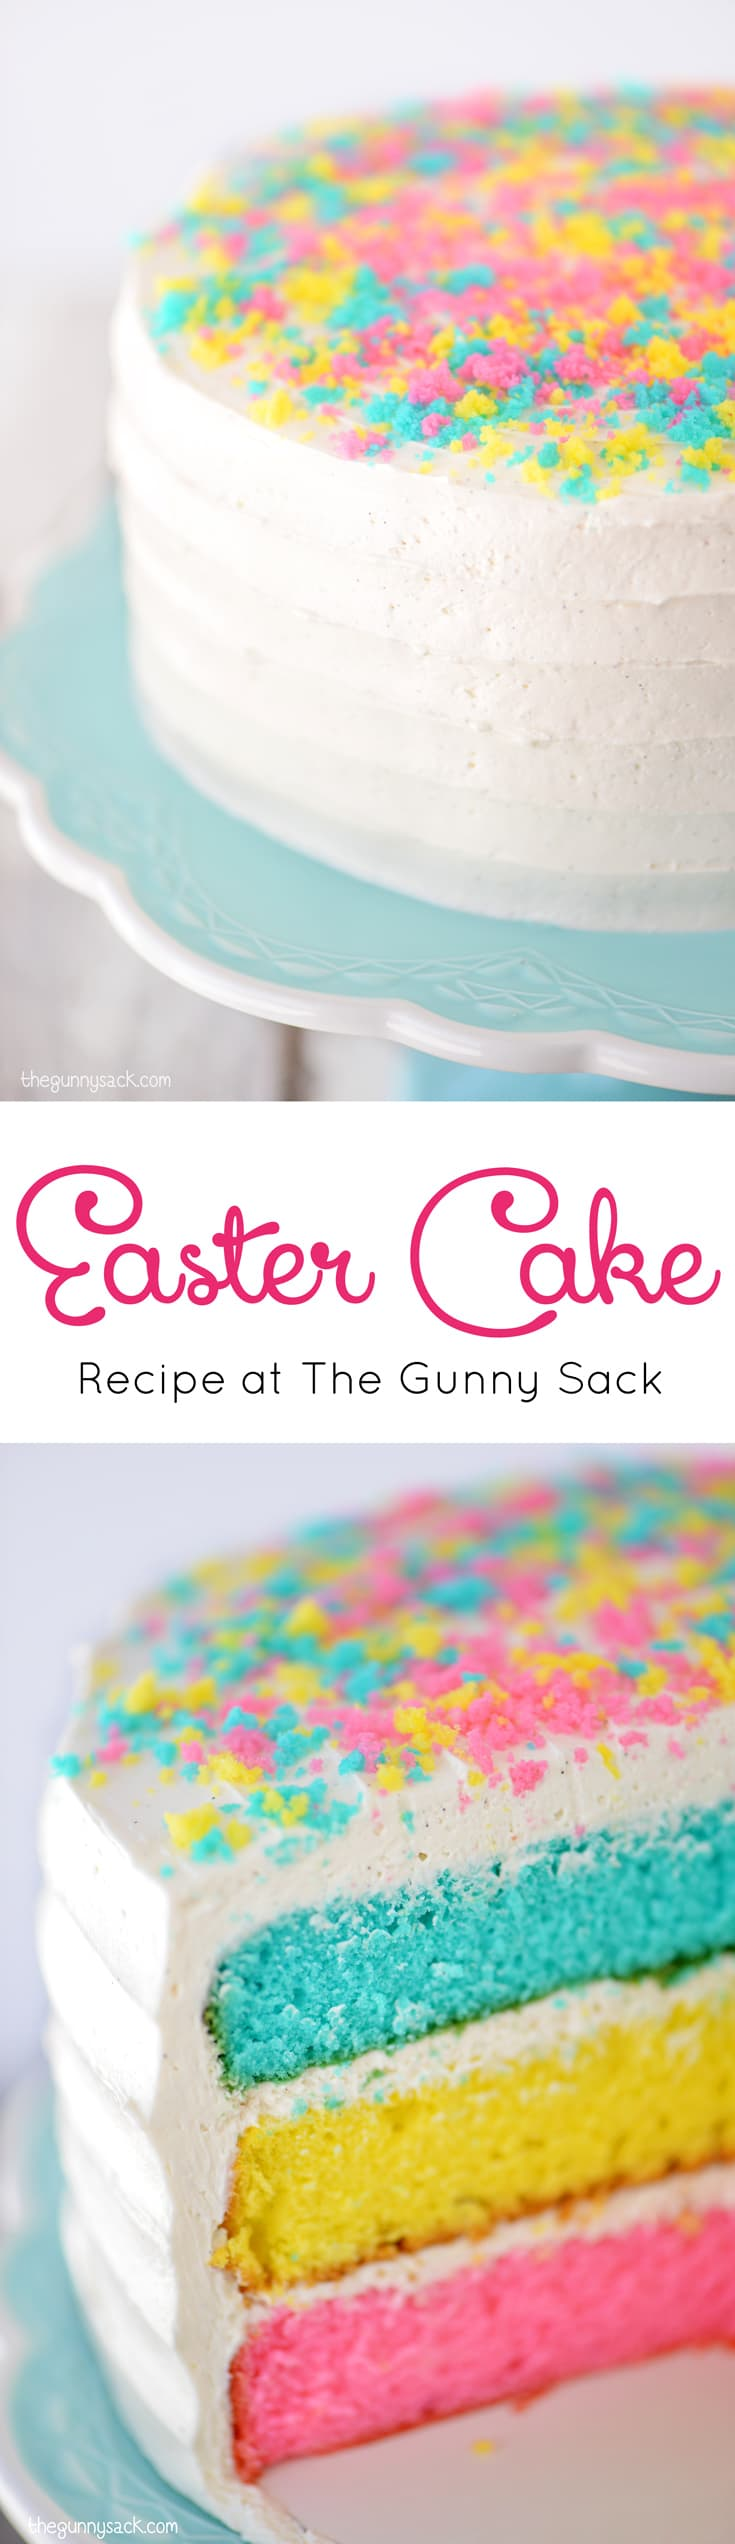 Easter Cake collage for Pinterest